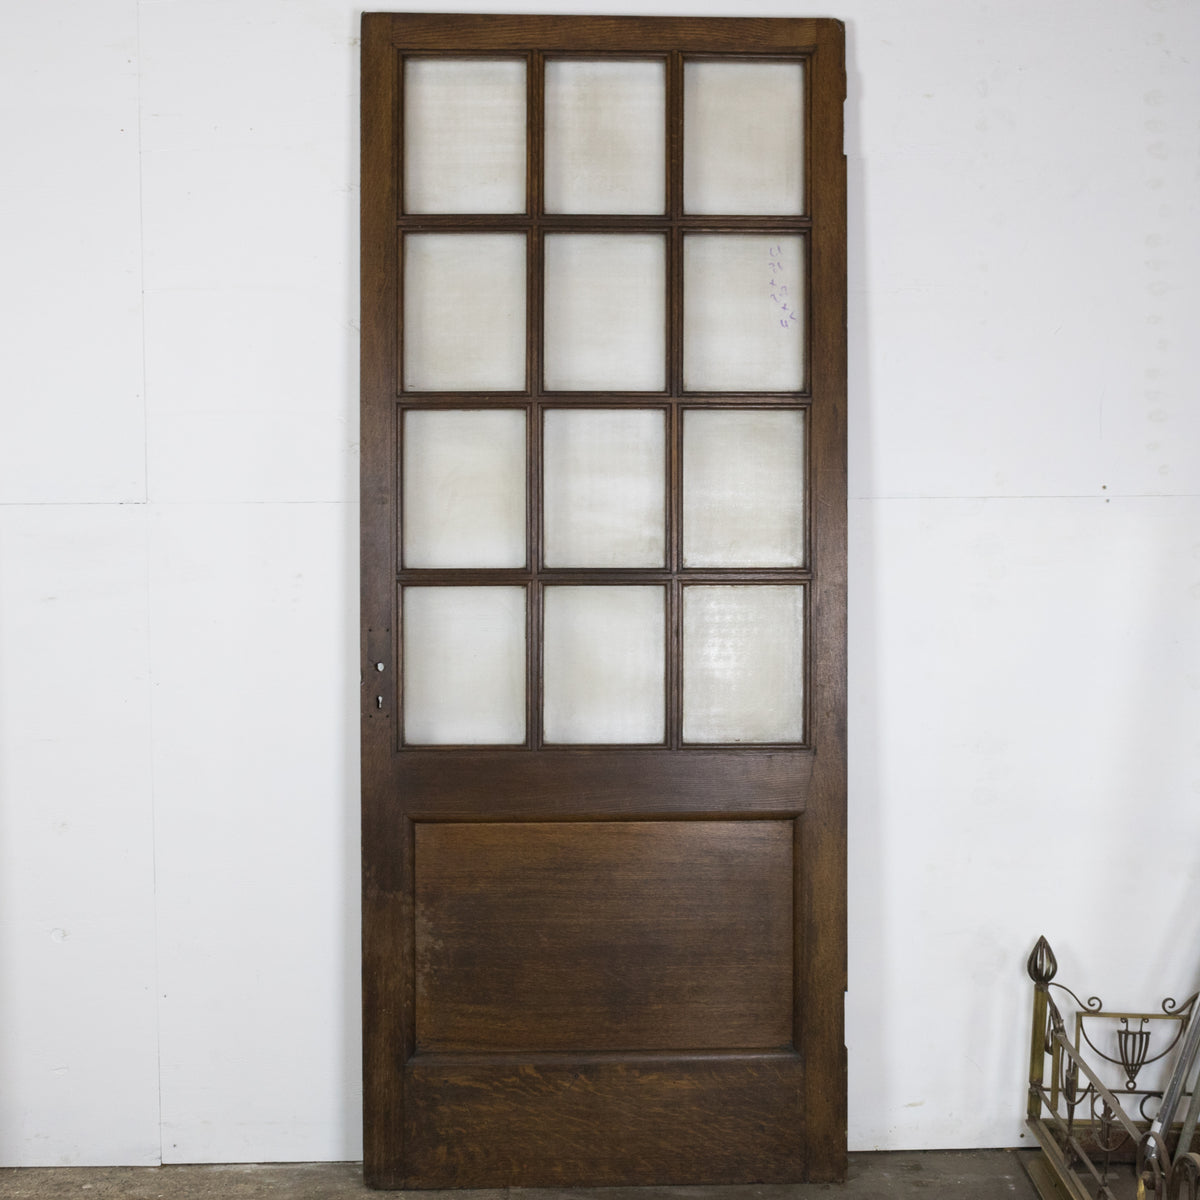 Antique 12 Panel Glazed Oak Door 208cm x 86cm | The Architectural Forum